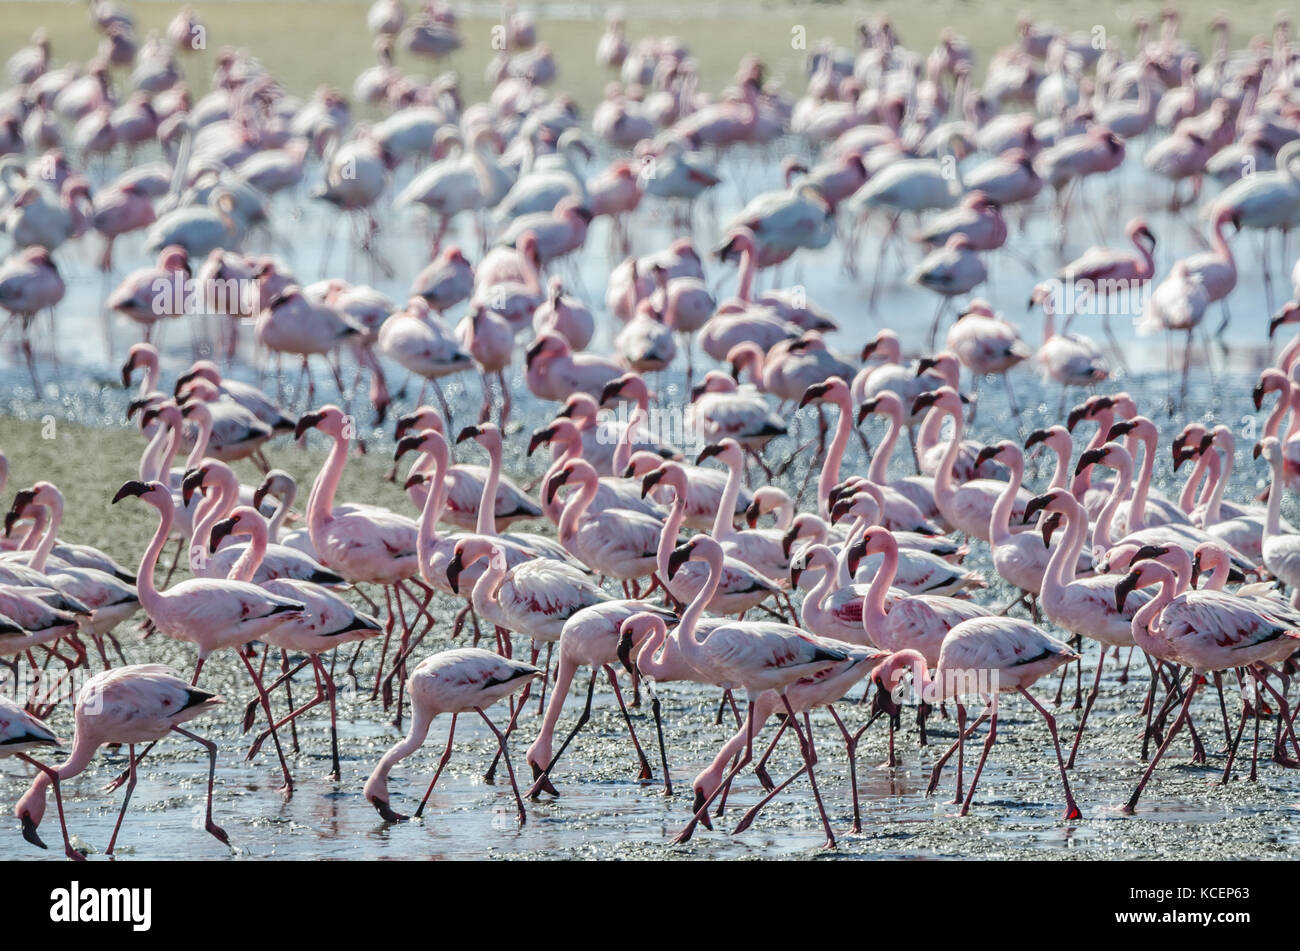 Flock of pink flamingos gathered at Namibia's Sandwich Harbour seaside and lagoon were wading to search for - Stock Image